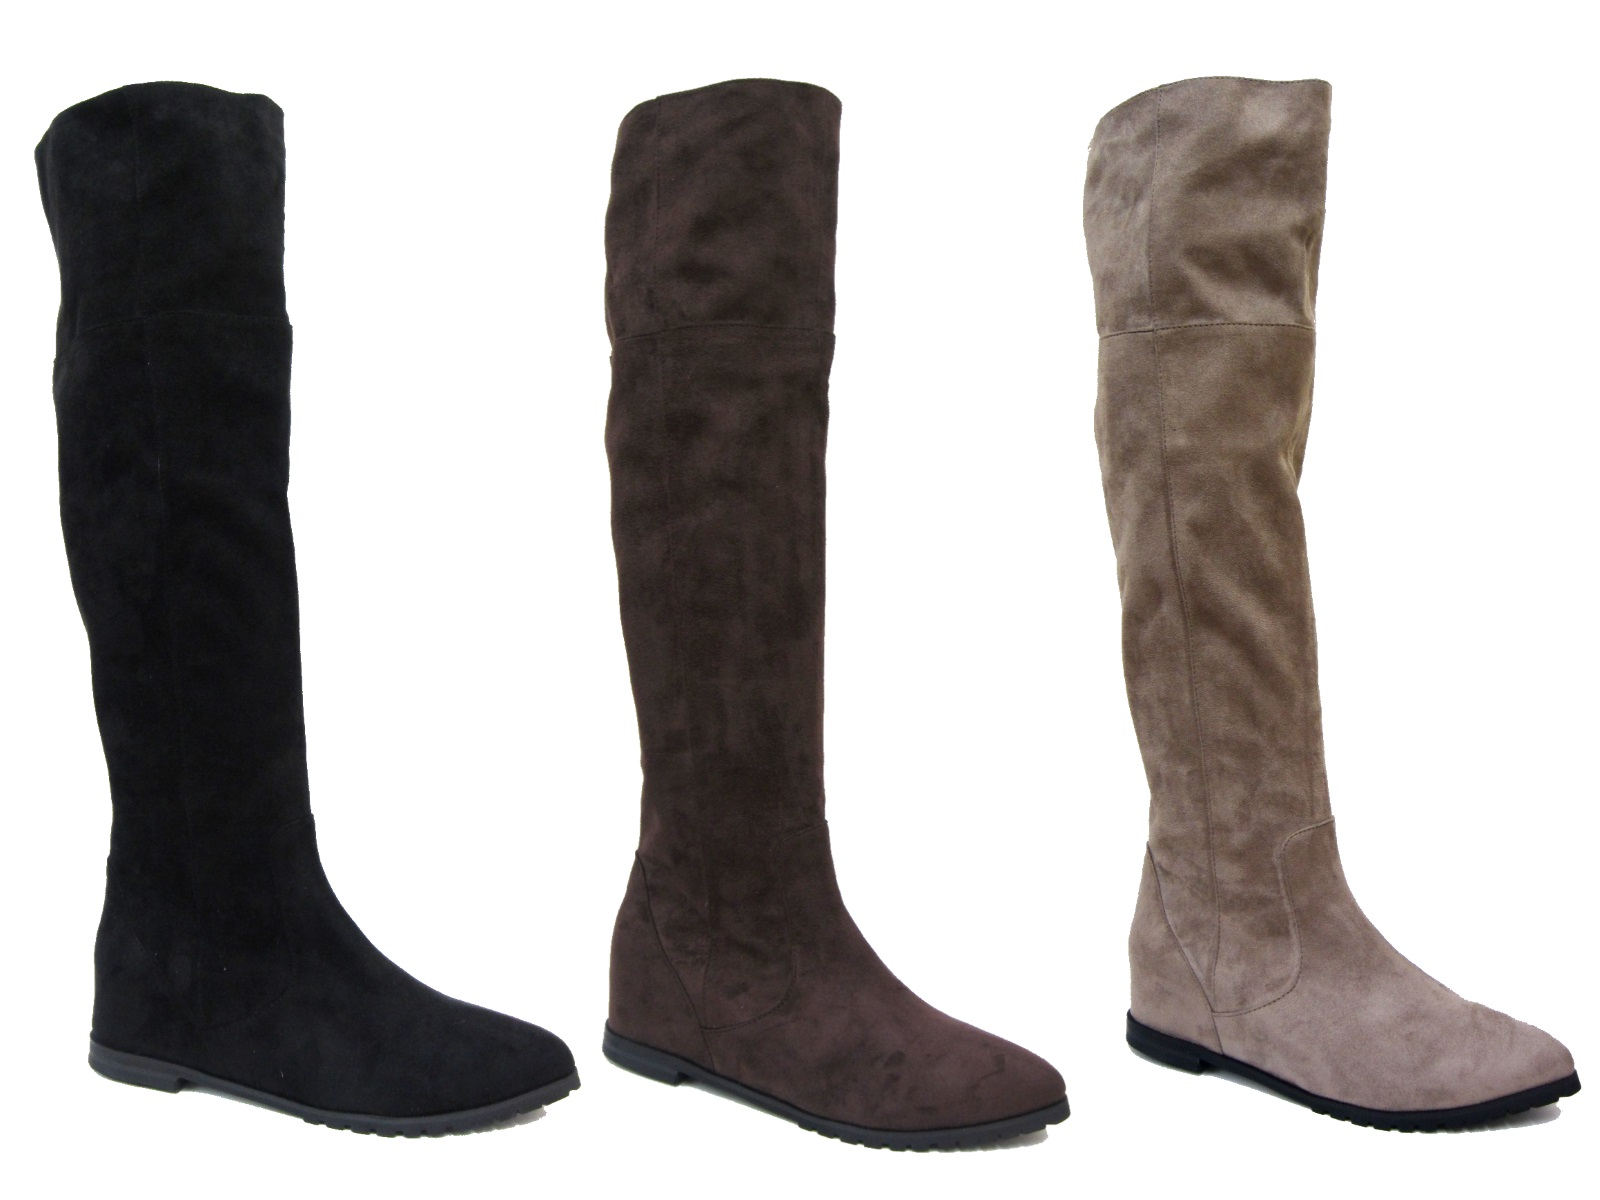 Womens Faux Suede Leather Flat Riding Knee High Boots Ladies Shoes Size UK  3 - 8 2b726f9d8